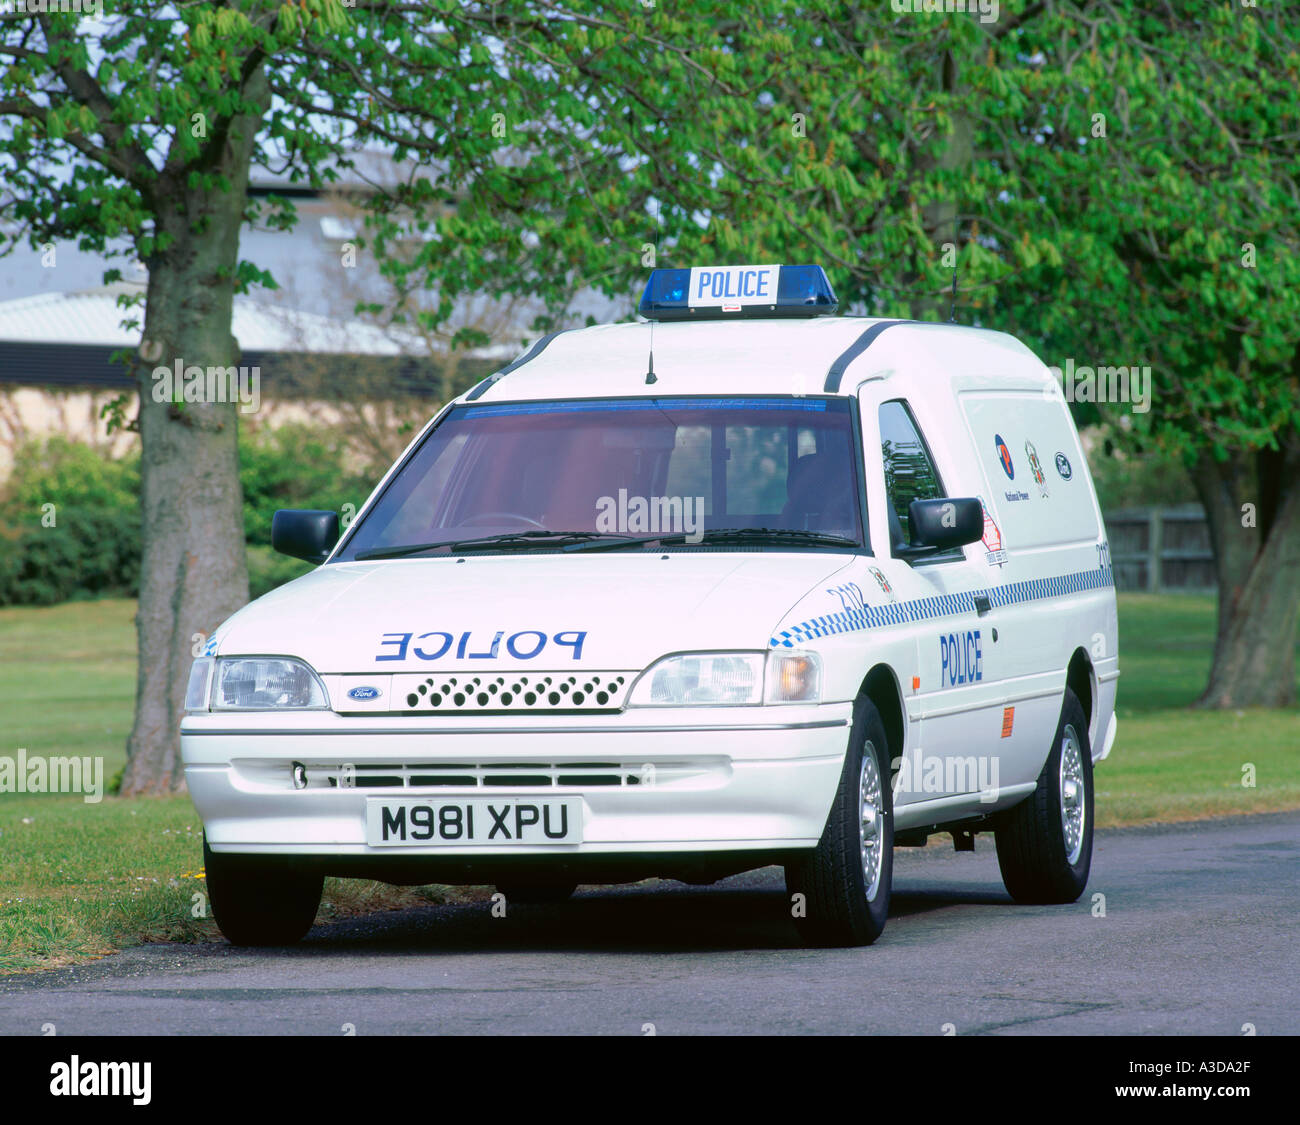 1606f8c3e49217 Ford Escort Van Stock Photos   Ford Escort Van Stock Images - Alamy